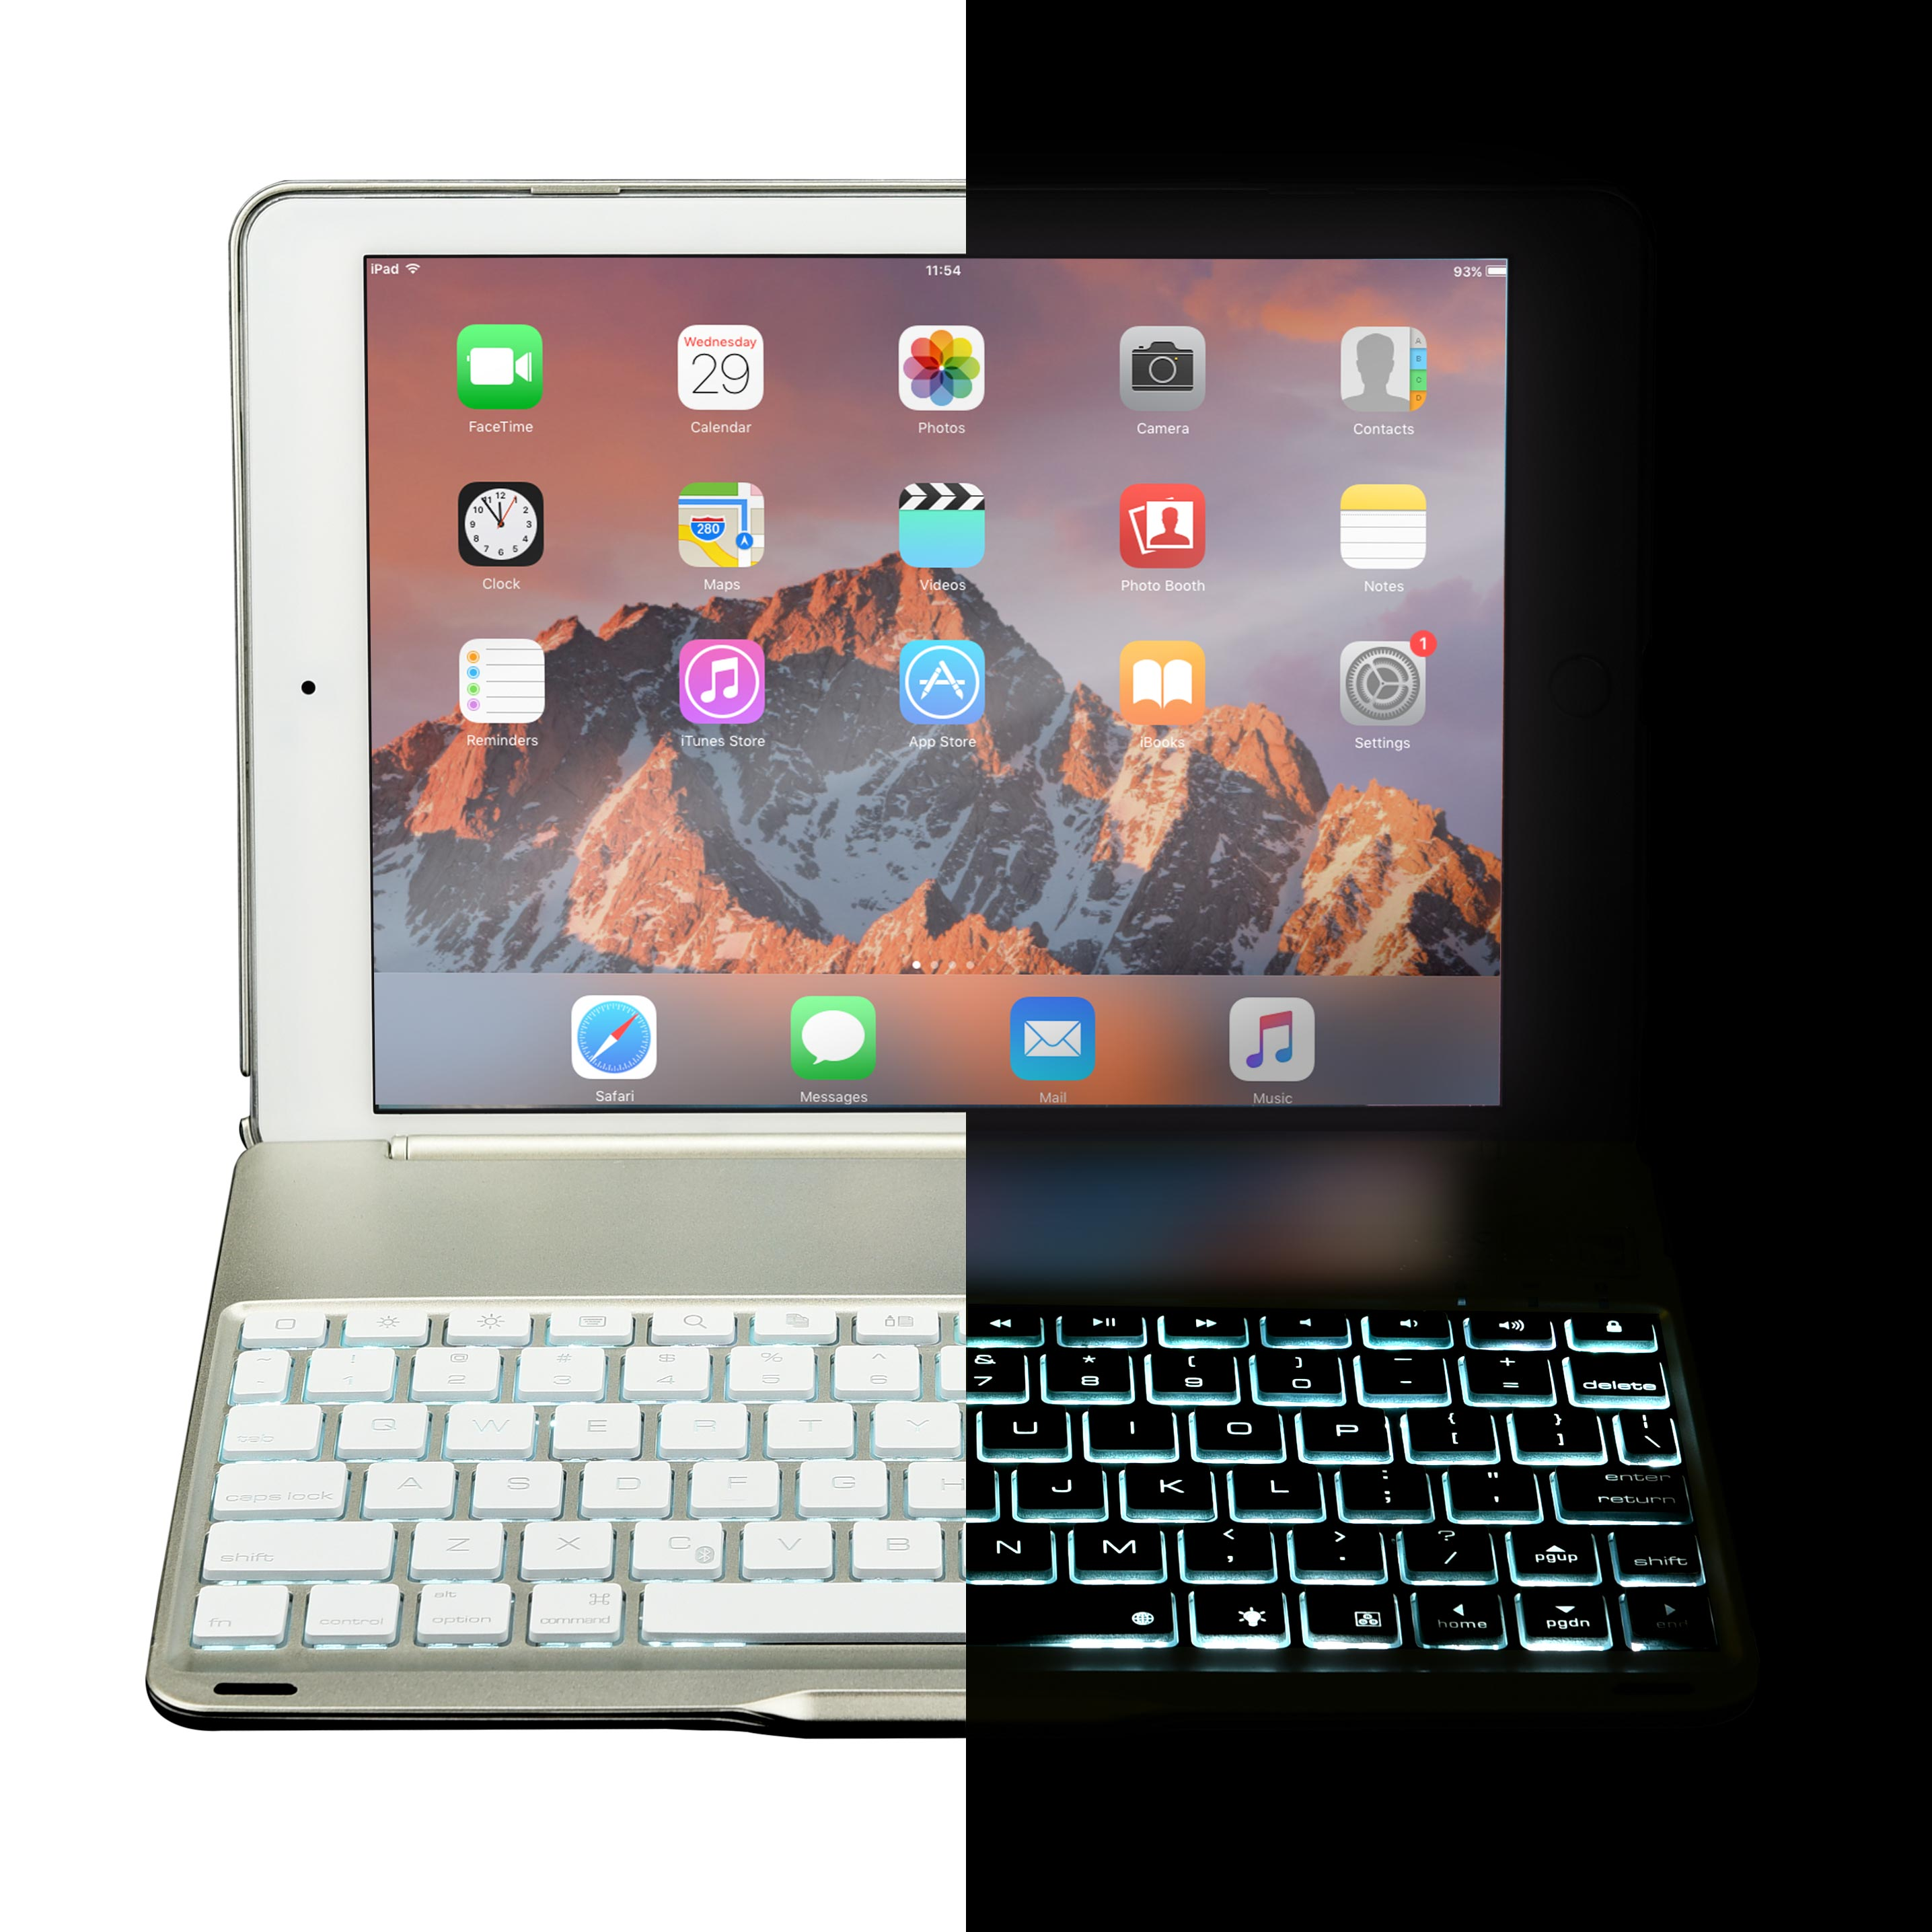 Cooper Notekee F8s Clamshell Backlit Keyboard Case For Apple Ipad Wireless Mini I8 With 3 Colour Backlight Bluetooth 30 Connection So You Dont Need Cables Scissor Cut Keys Provide Typing Experience Just Like On Laptop 7 Led Key Colors